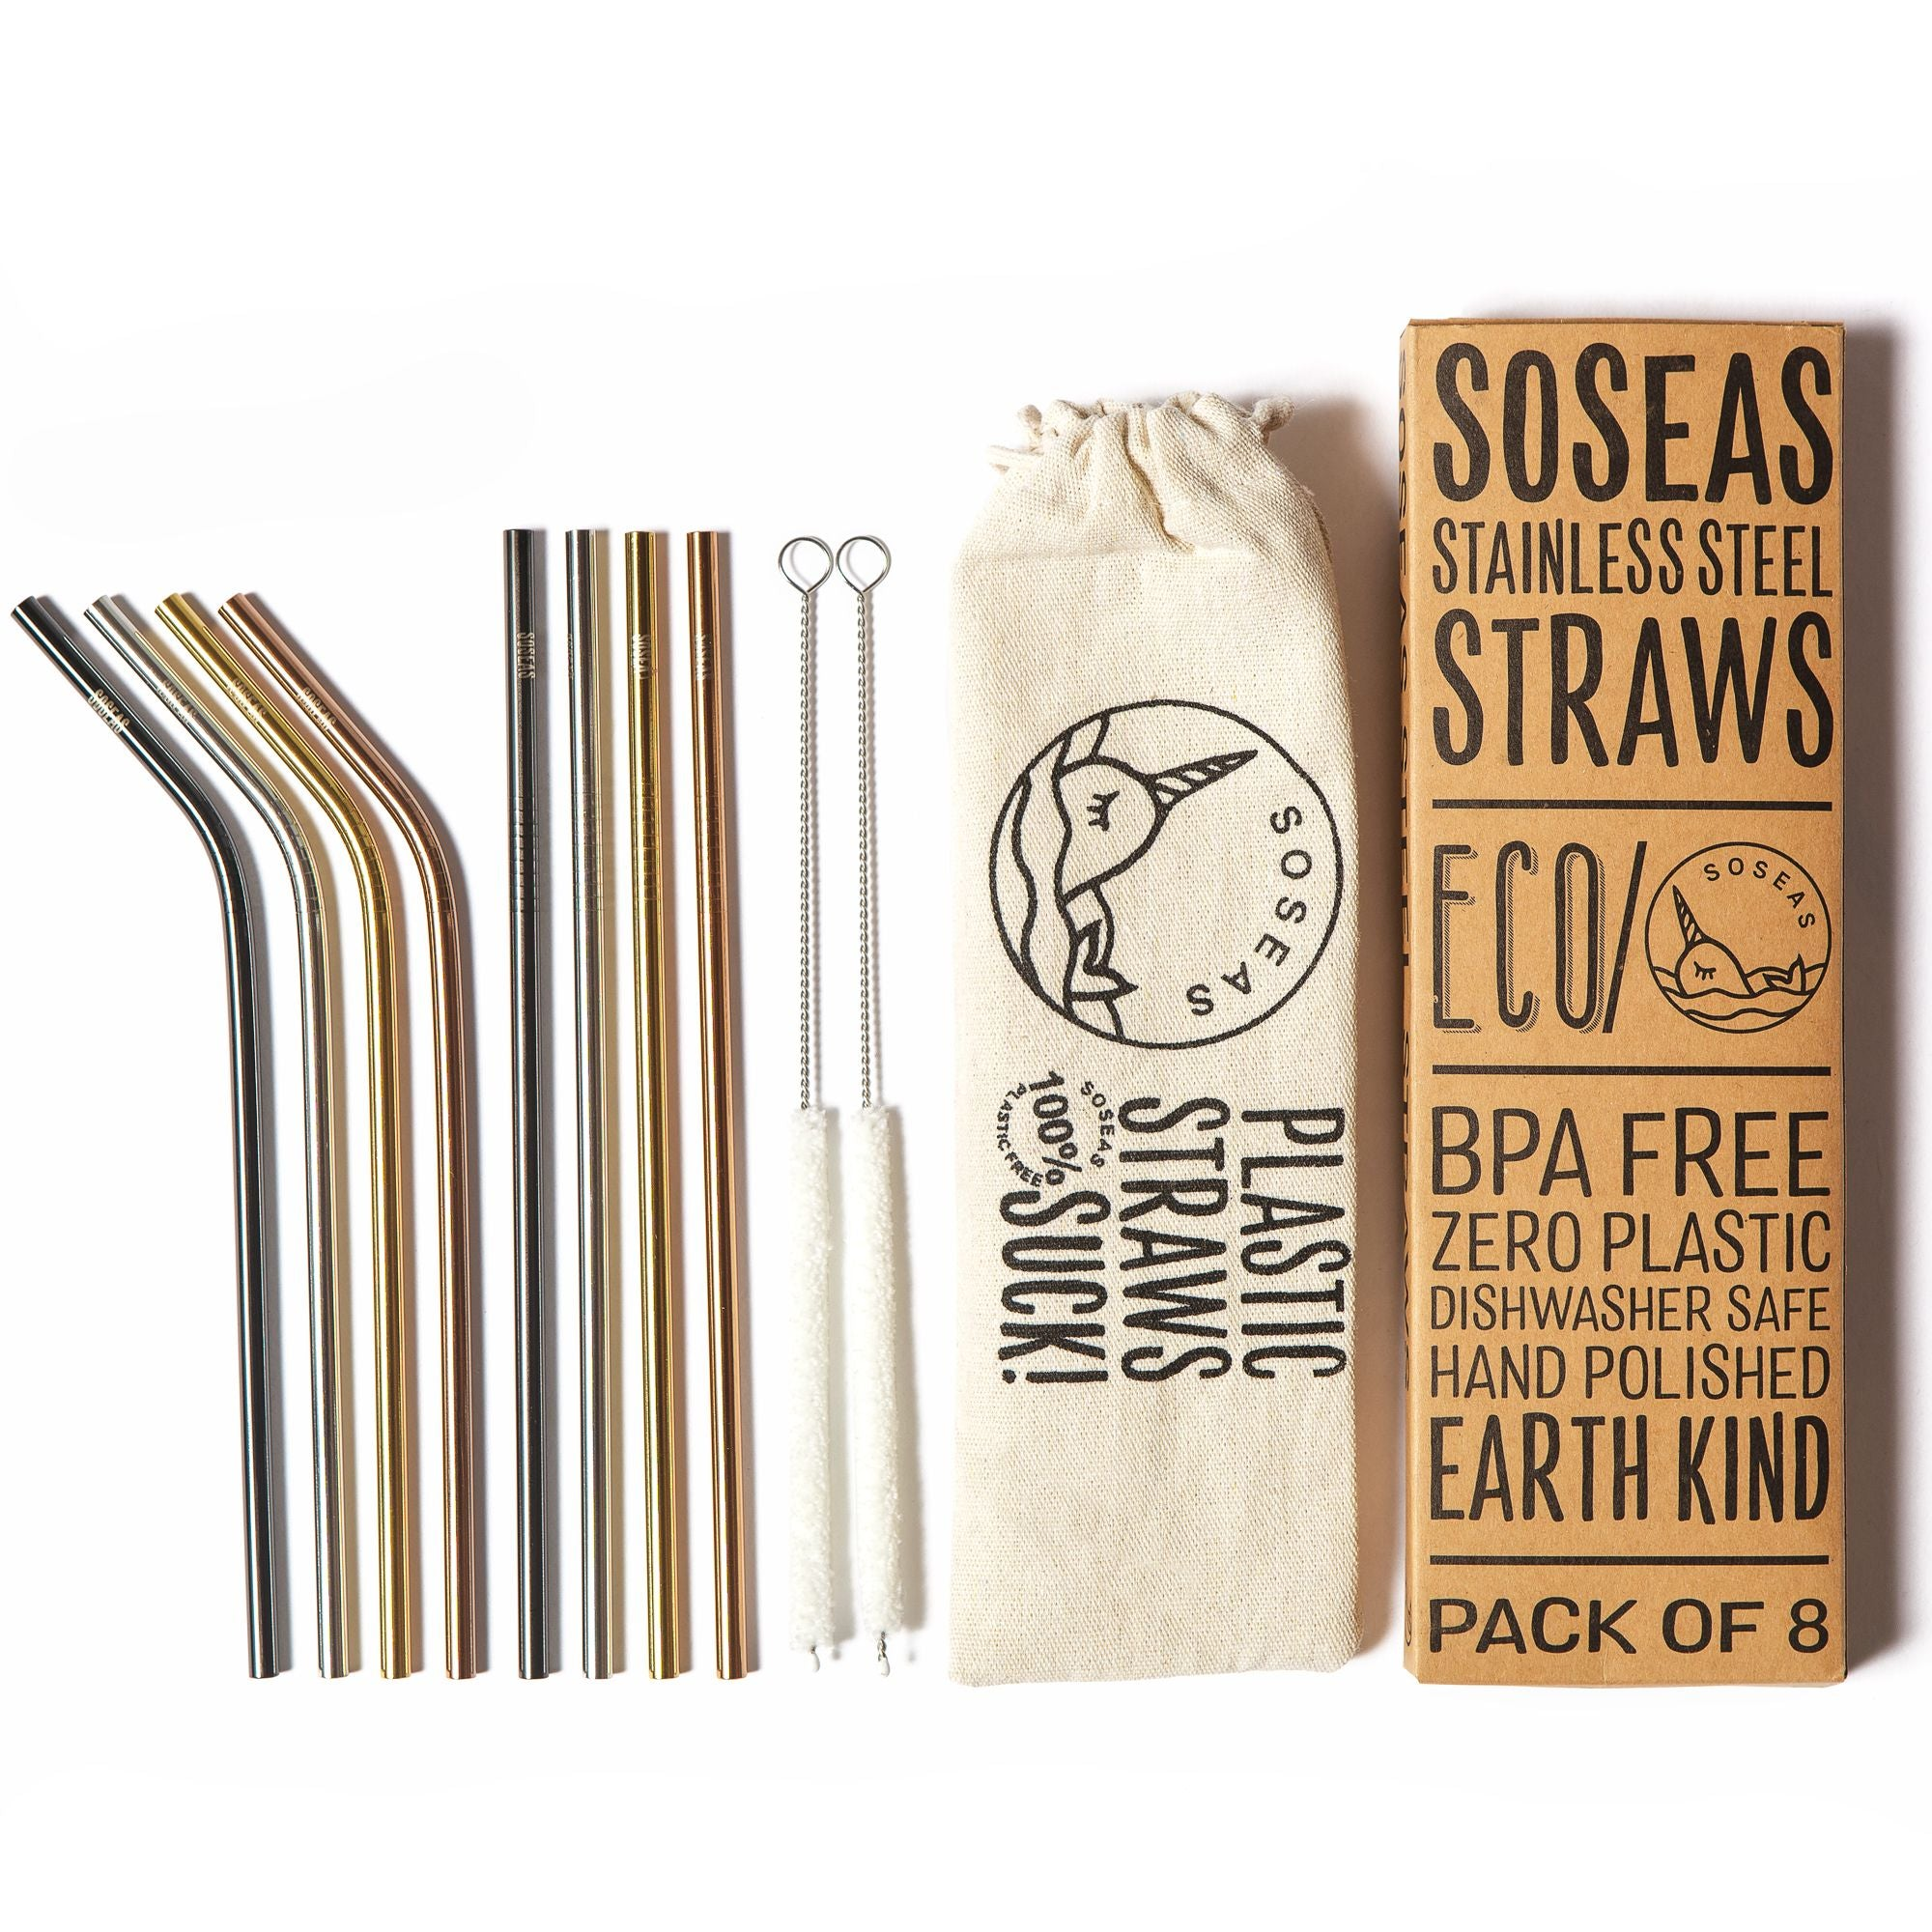 Steel Straws [8 Pack] with FREE Linen Carry Case & Cotton Cleaners